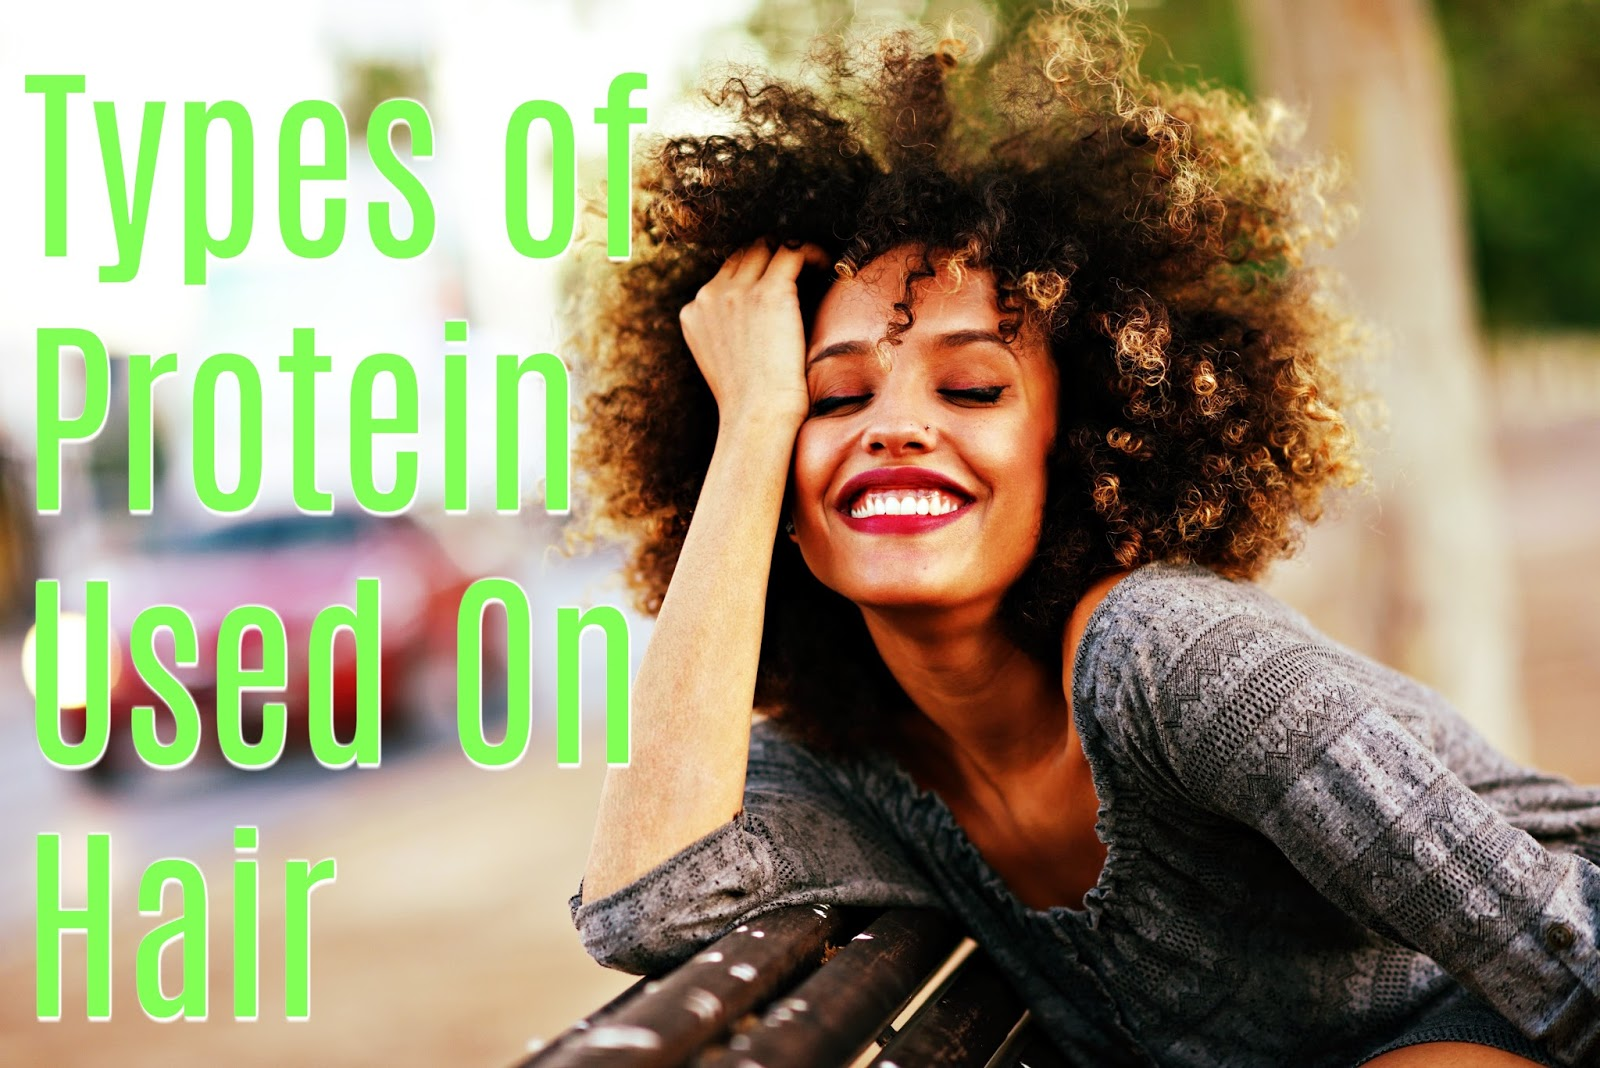 The Power Of Proteins For Natural Hair. Know why your hair needs them and how they help! From the different types, to what each one does, learn what our hair is comprised of and why proteins are essential to natural hair health.